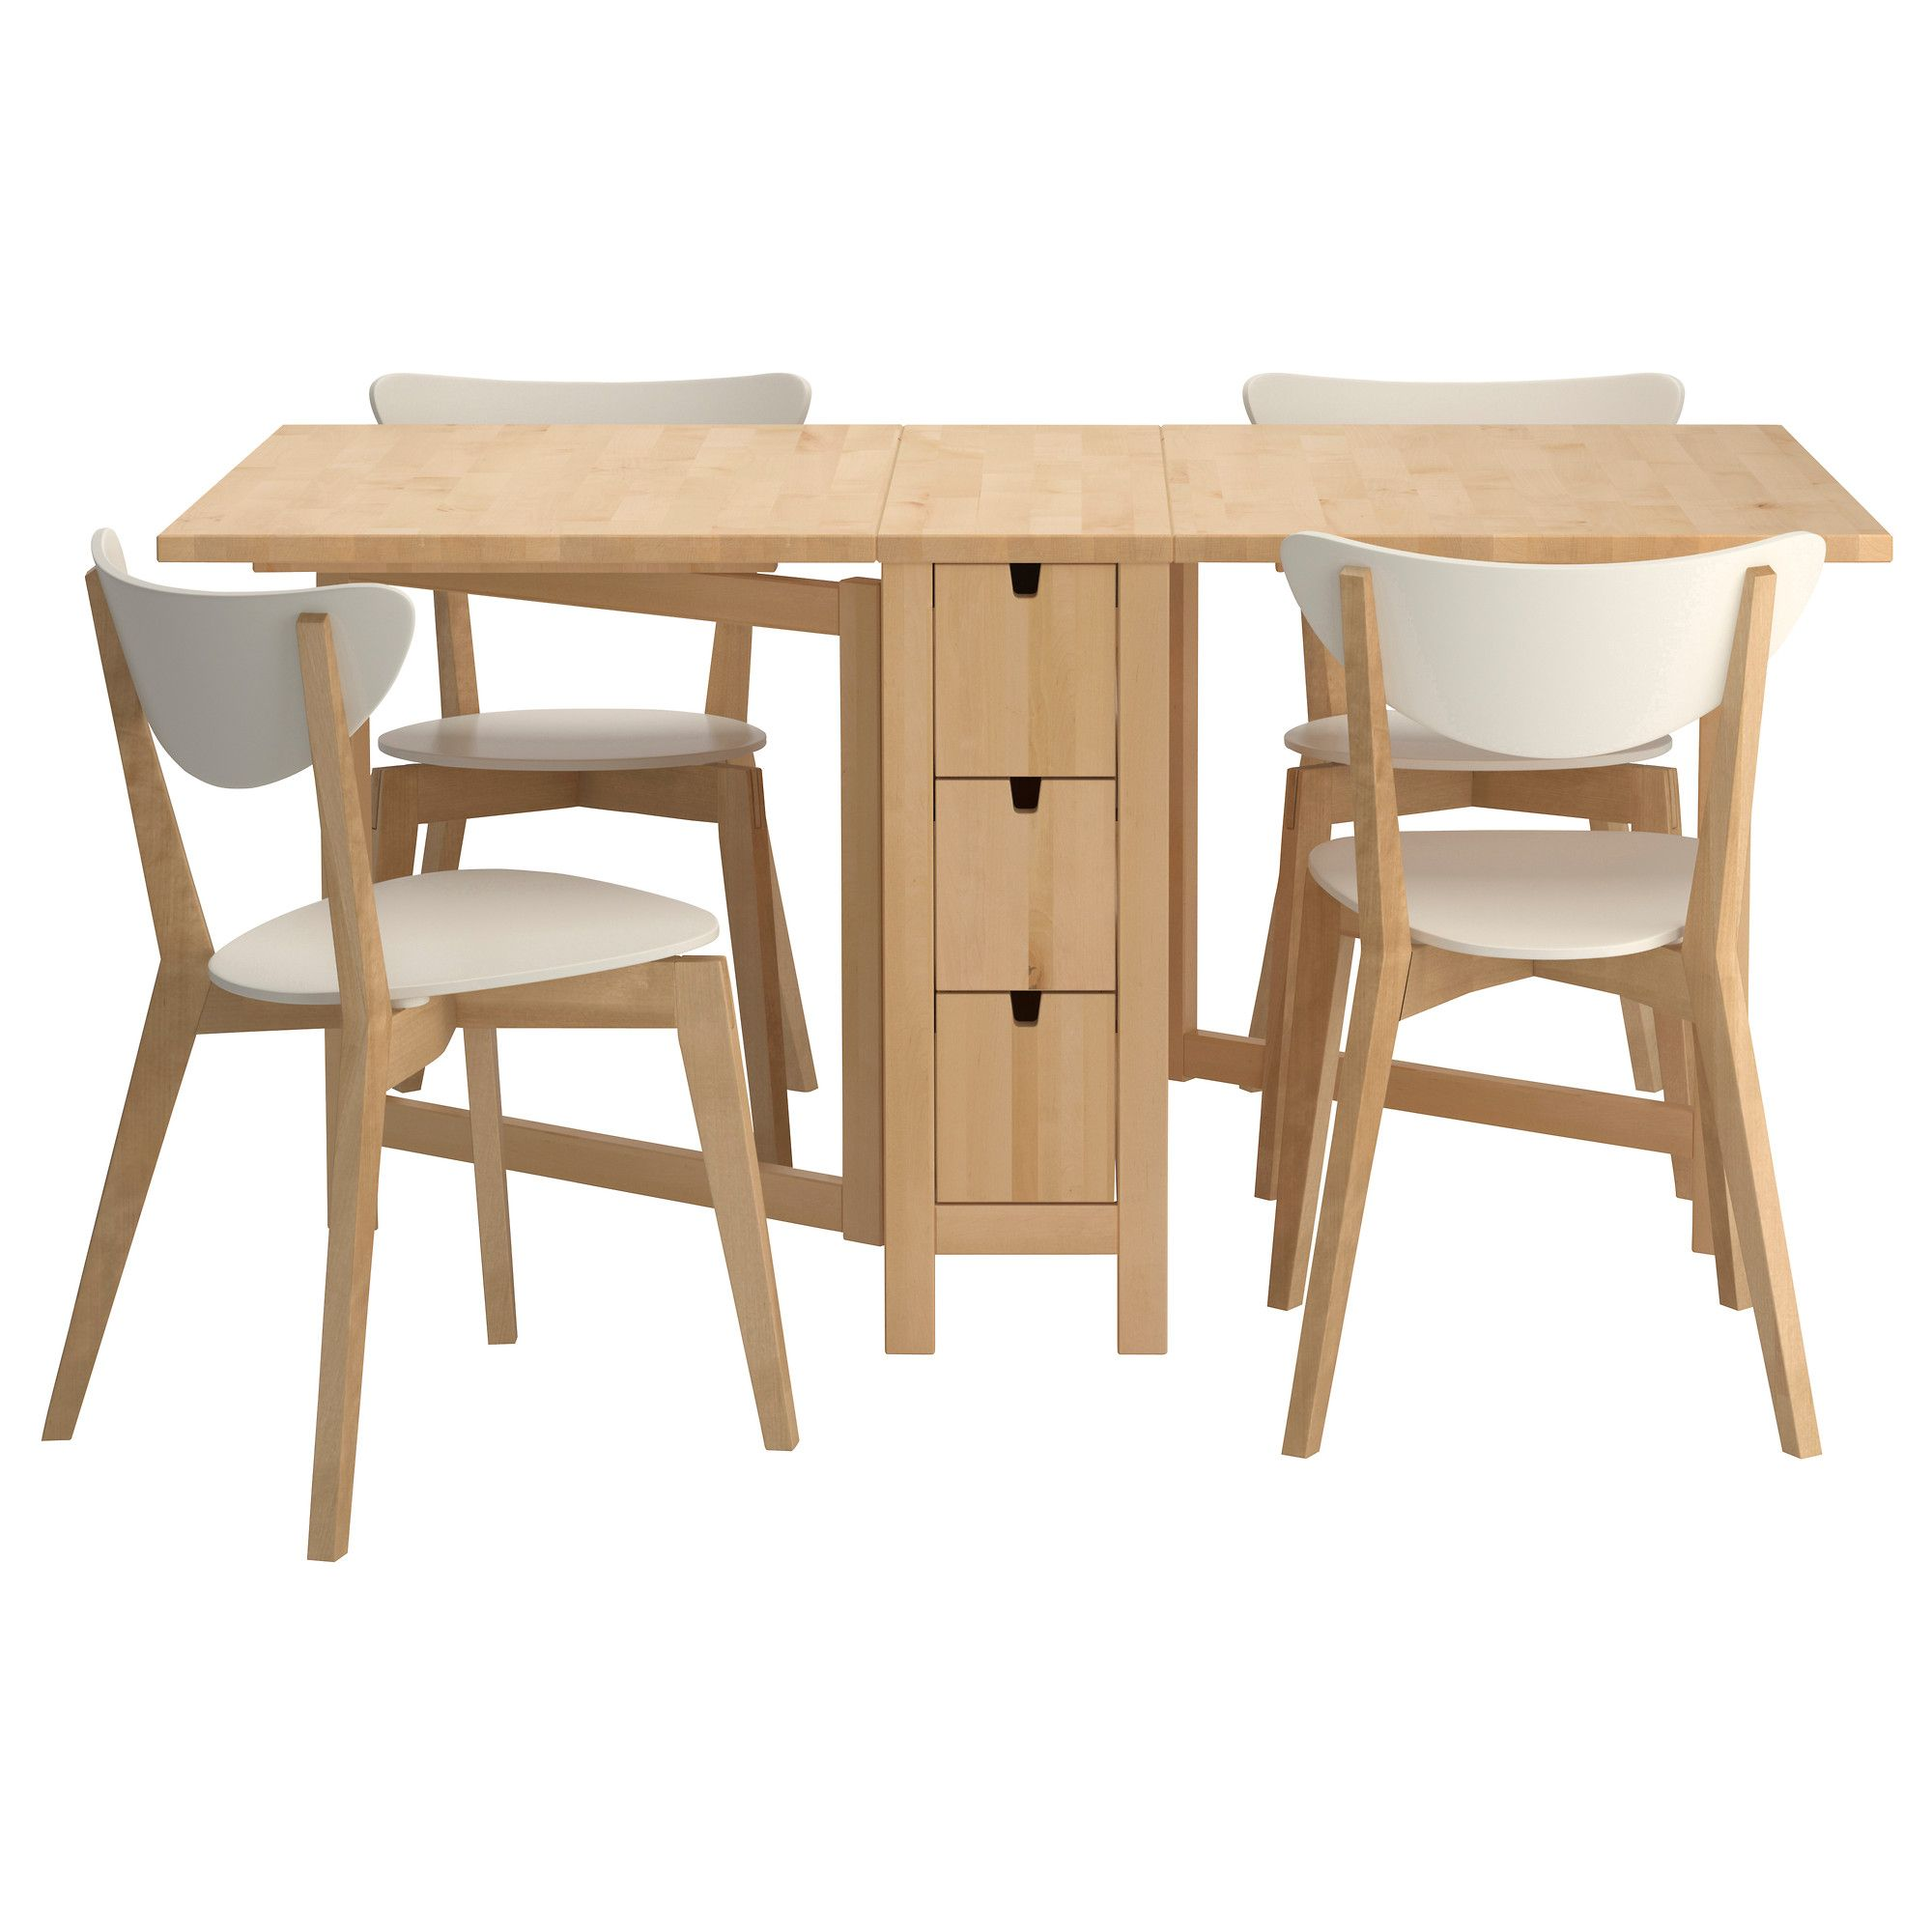 Norden nordmyra table and 4 chairs ikea for the love for Best wooden dining tables and chairs